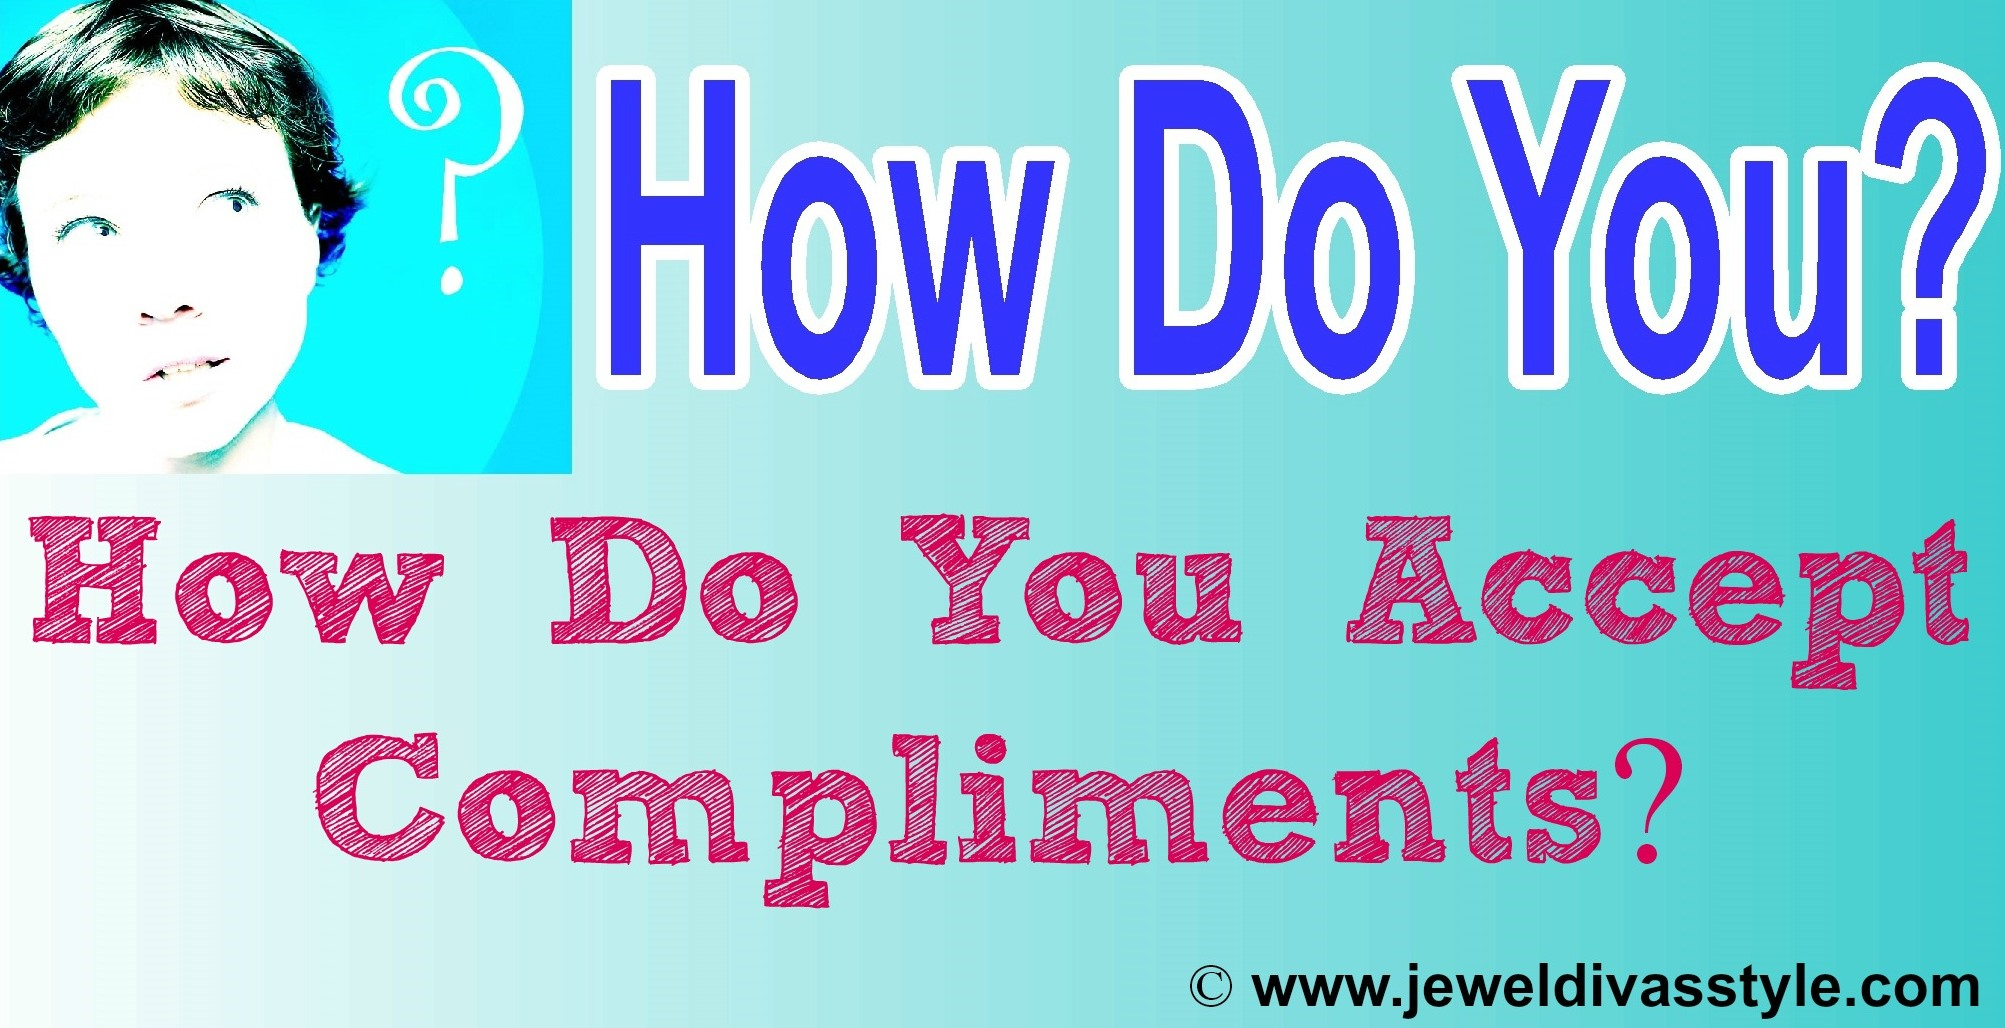 HOW DO YOU: Accept Compliments